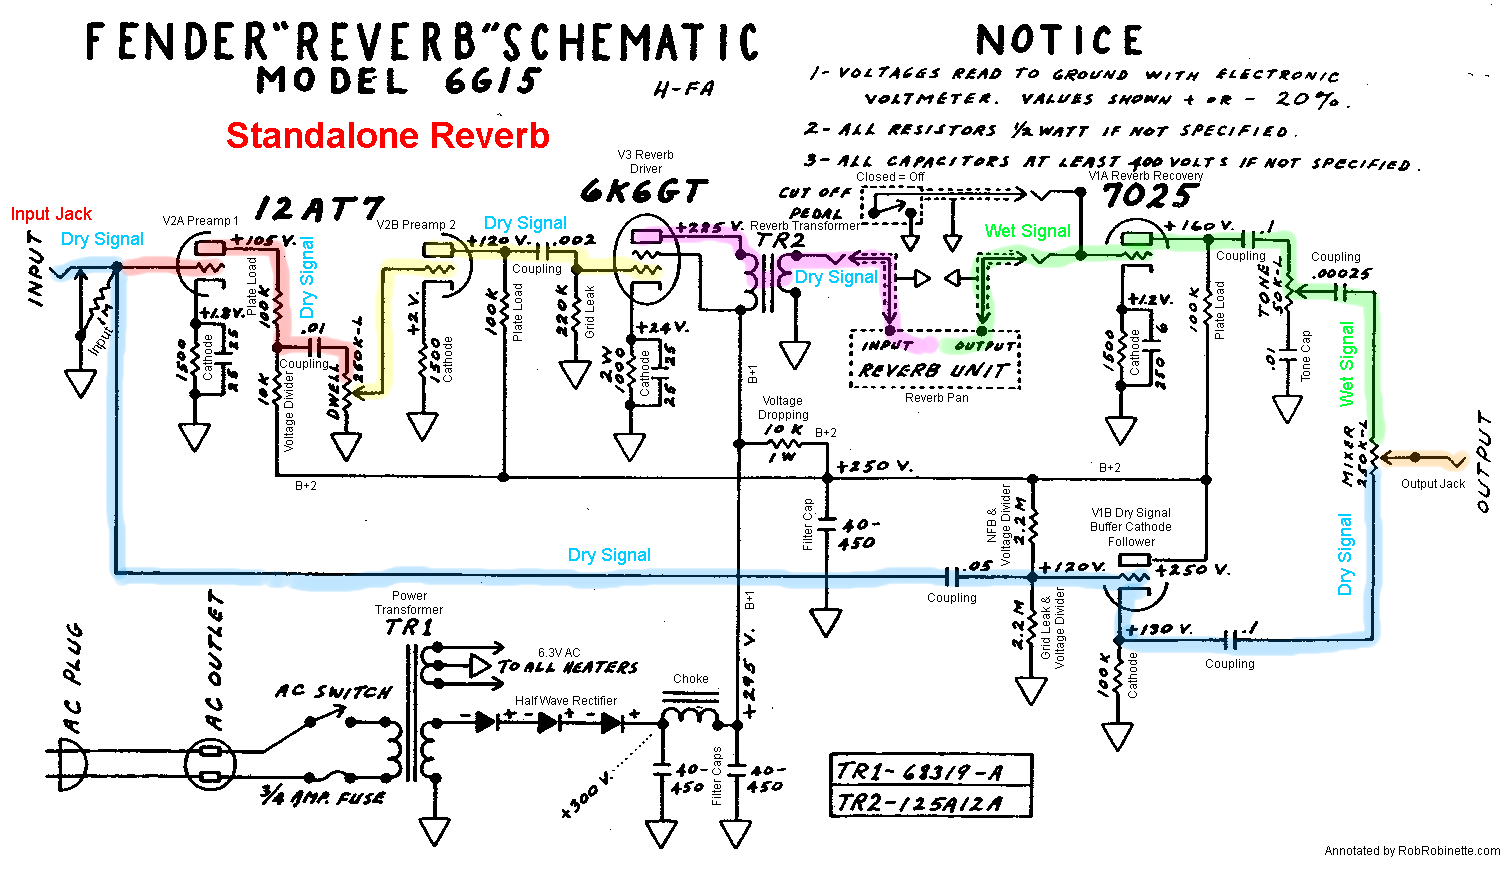 medium resolution of fender 6g15 tube reverb unit schematic with signal flow by robrobinette com